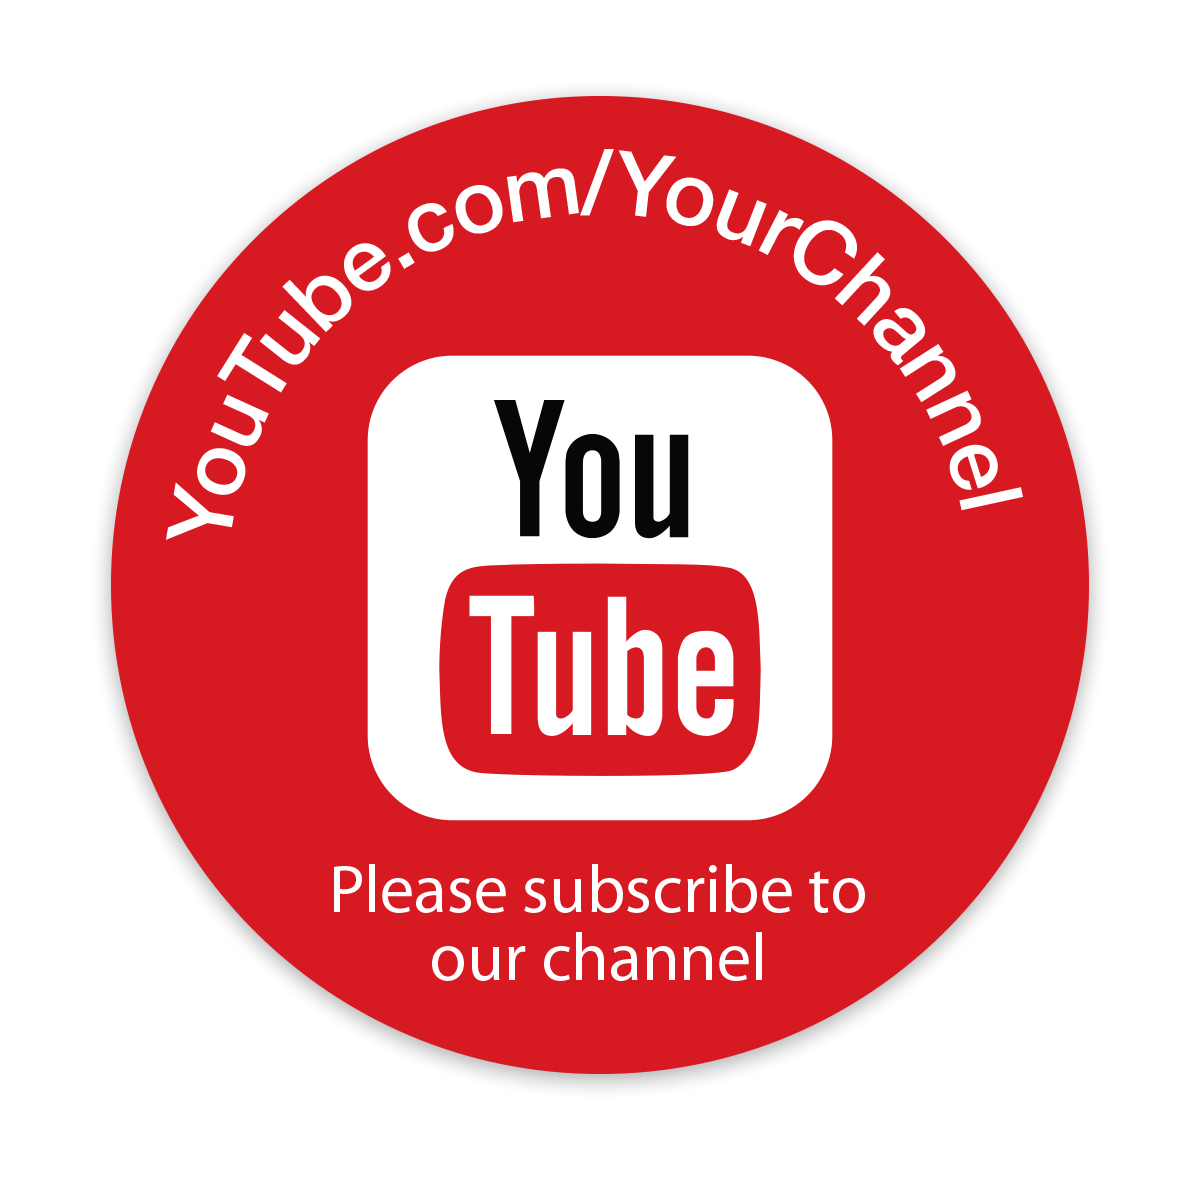 Custom Youtube Channel Design: Personalized YouTube Stickers